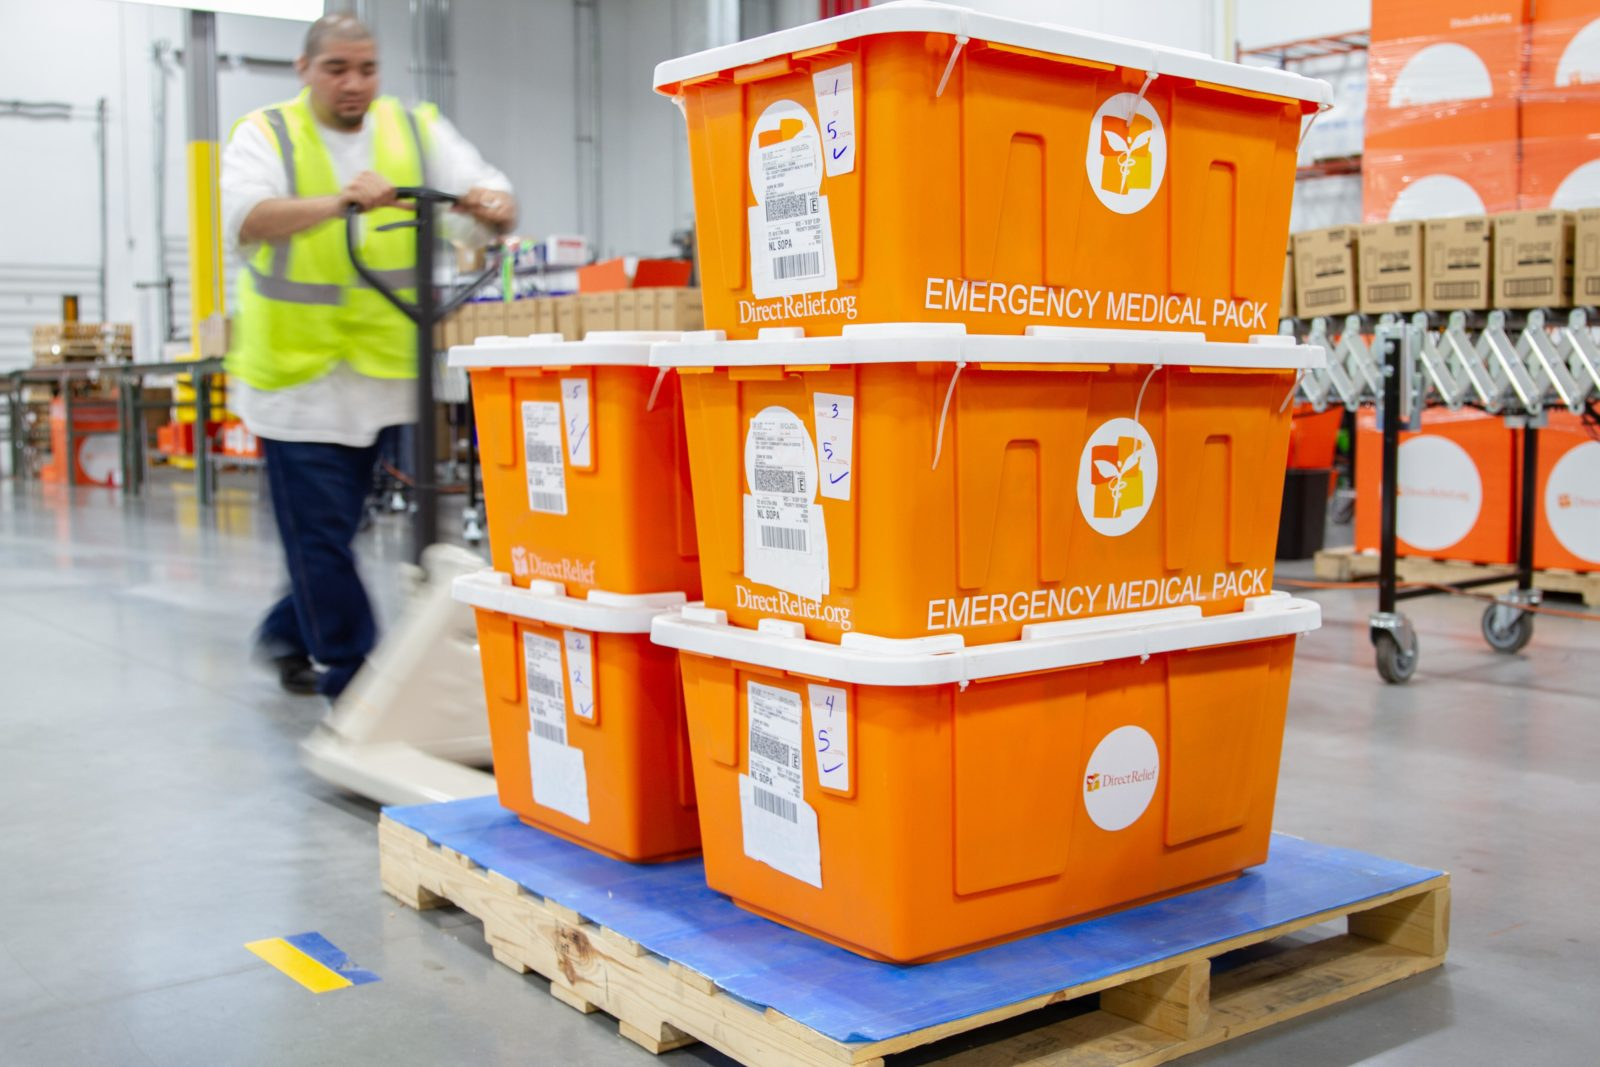 Emergency Medical Packs leave Direct Relief's warehouse. (Lara Cooper/Direct Relief)